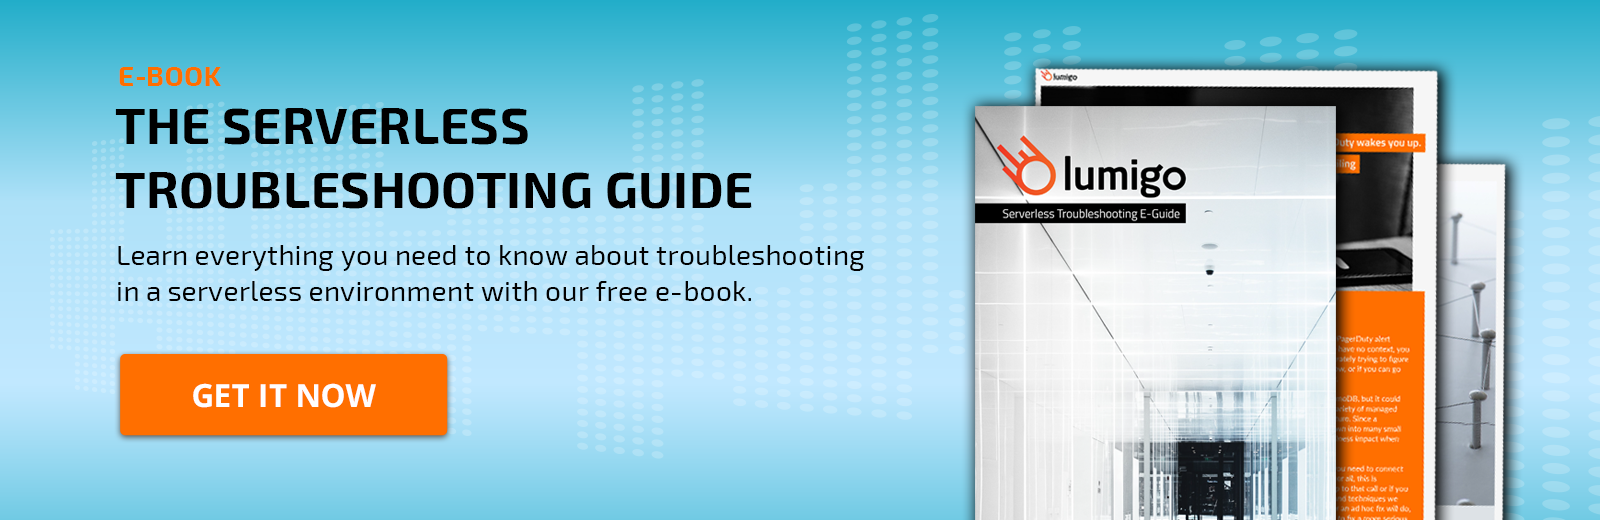 Free E-Book - The Serverless Troubleshooting Guide